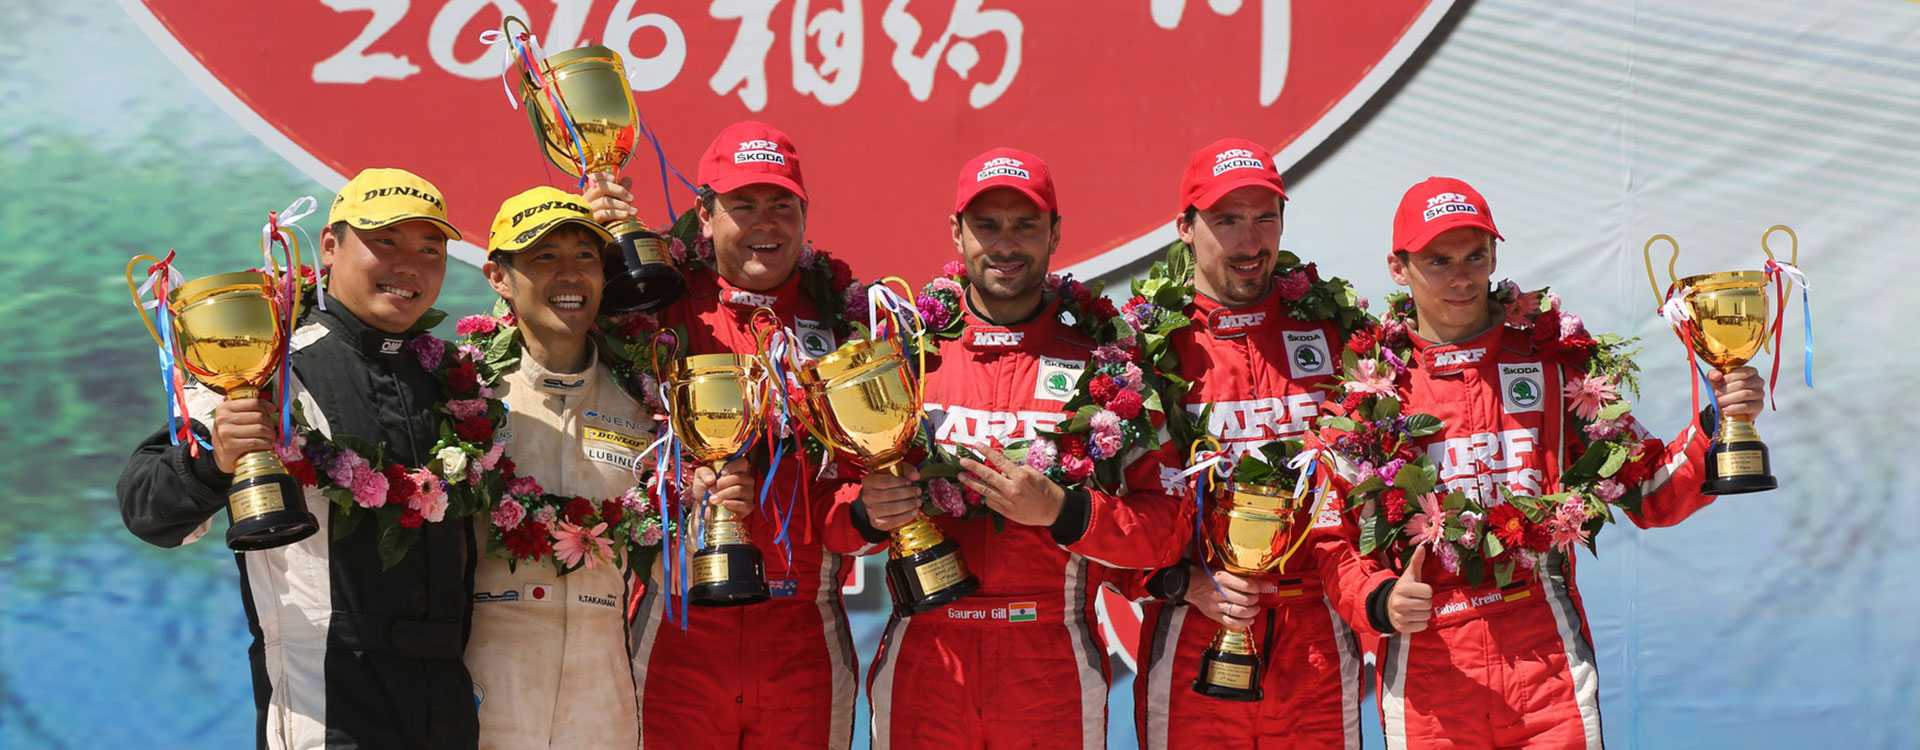 APRC: ŠKODA wins again at the desert rally in China